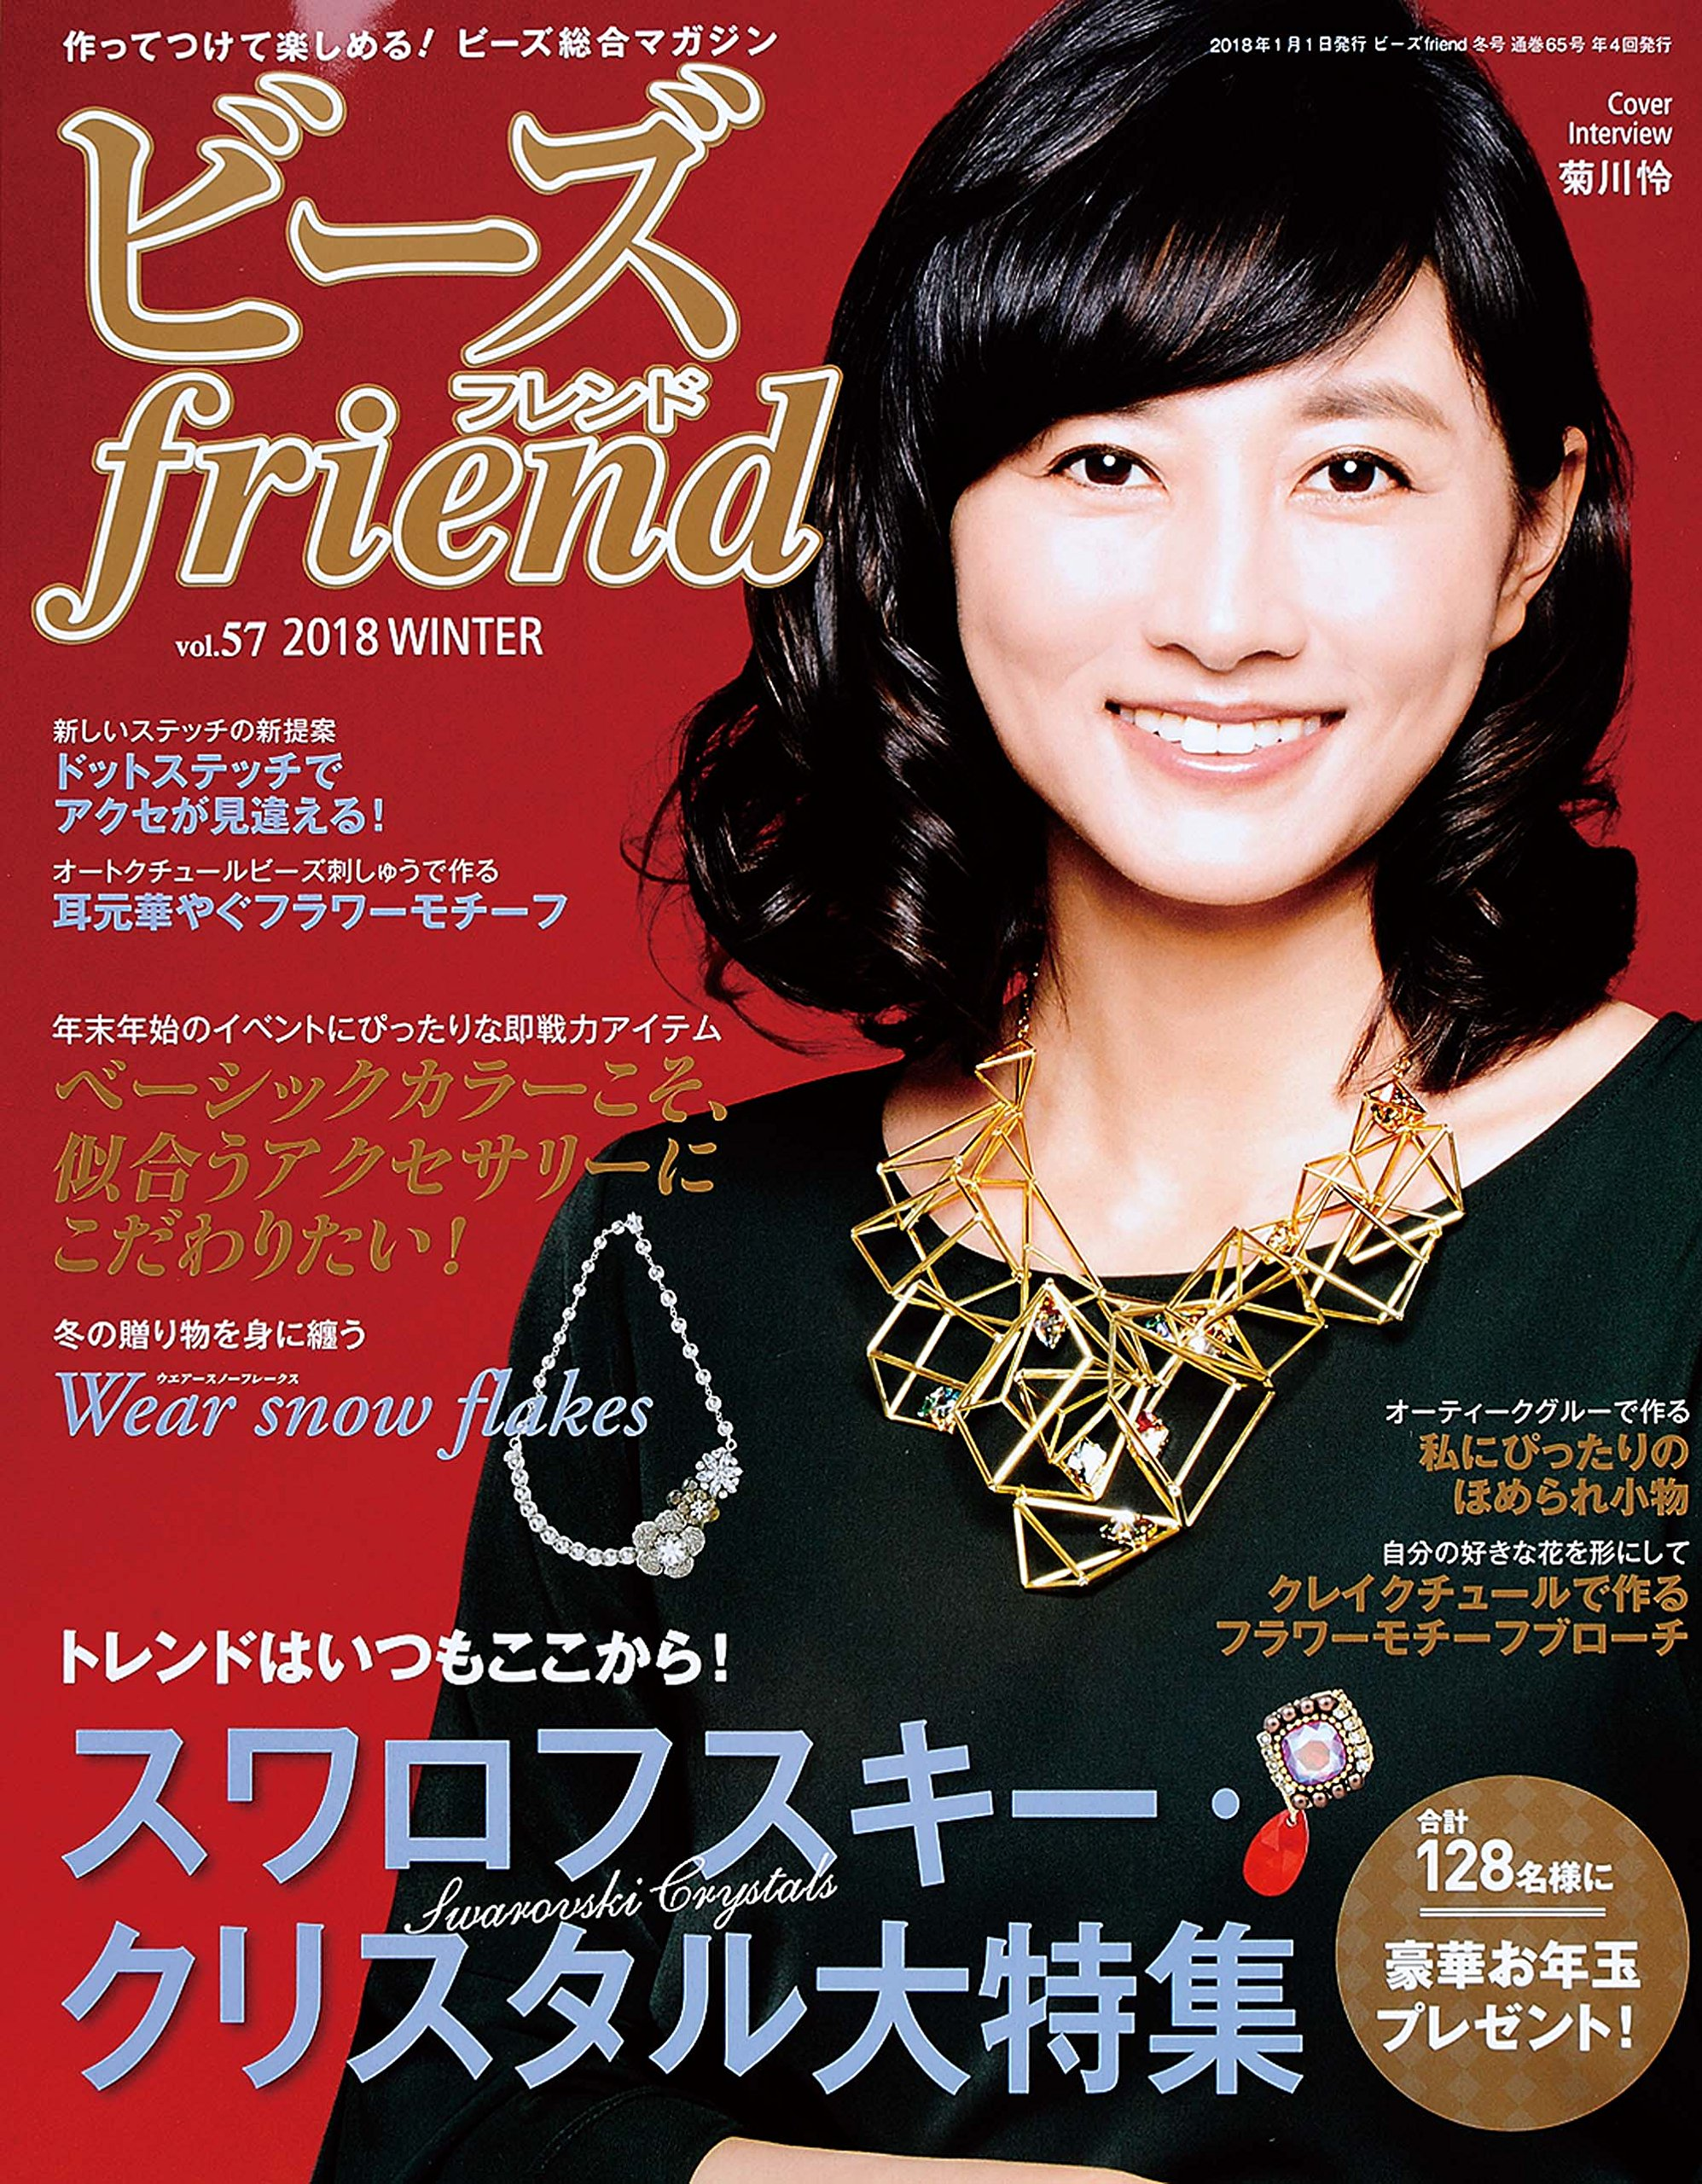 Beads Friend 2018 Vol.57